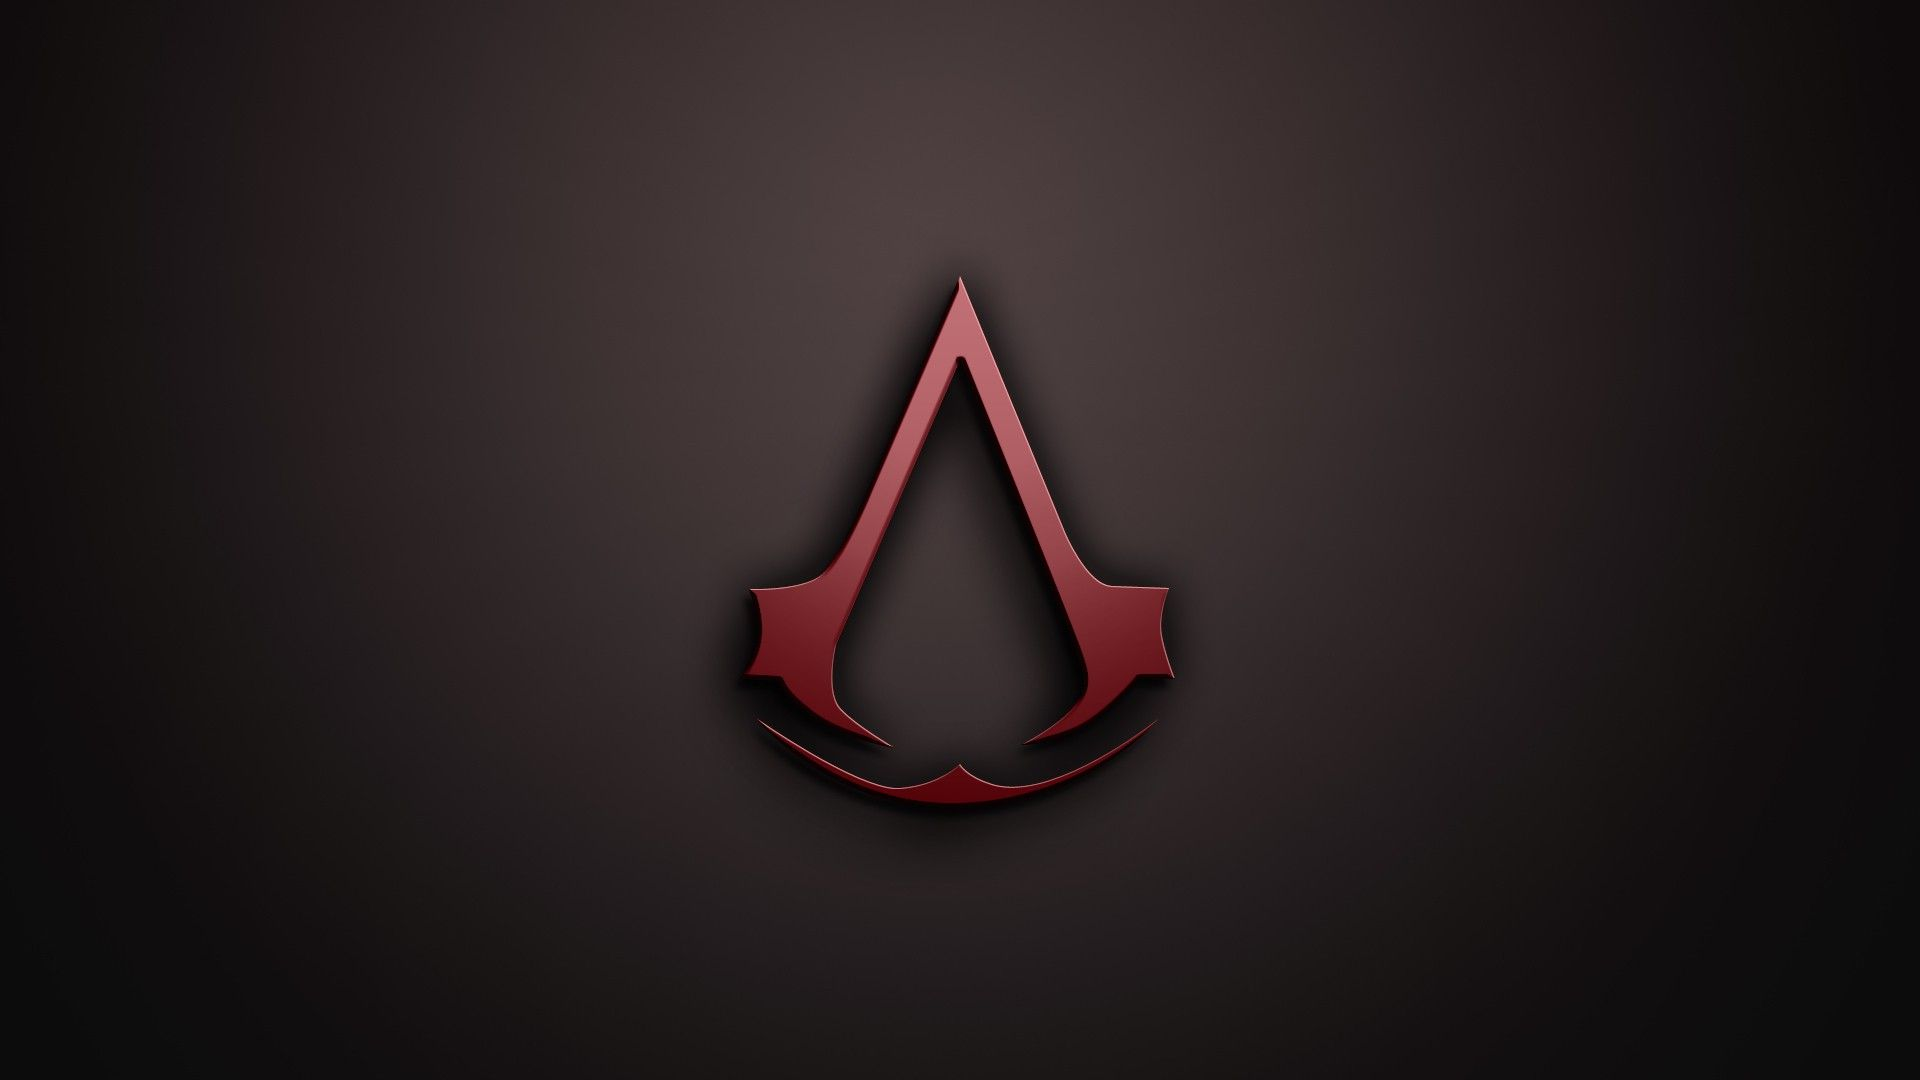 Assassins Creed Symbol Wallpaper Posted By Zoey Mercado